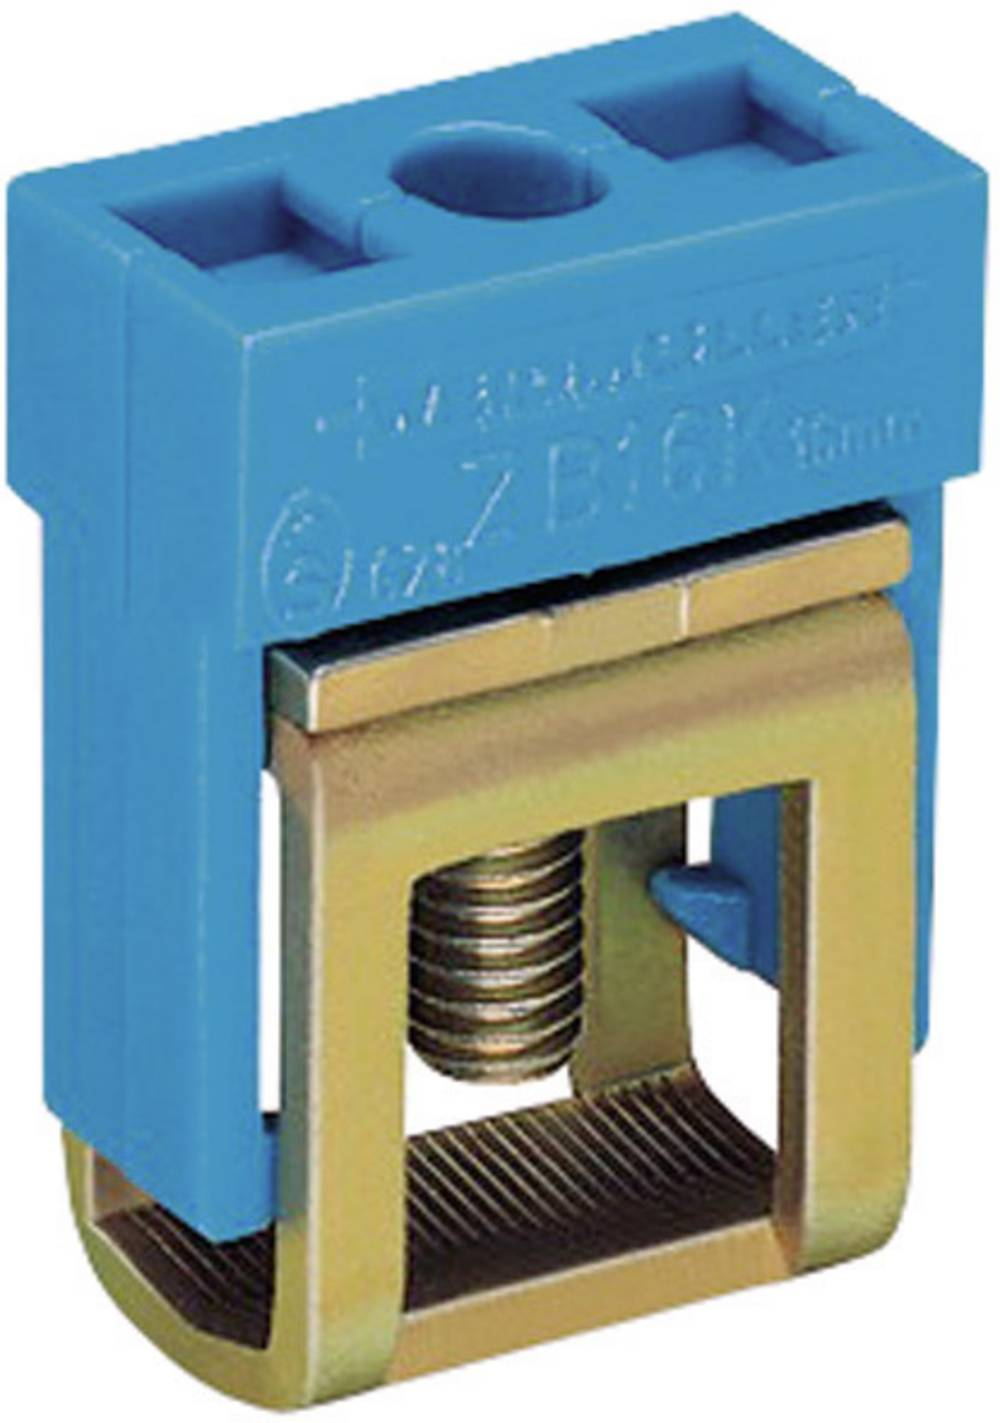 WAGO 210-281 Connection Terminal Compatible with: N-bus rail